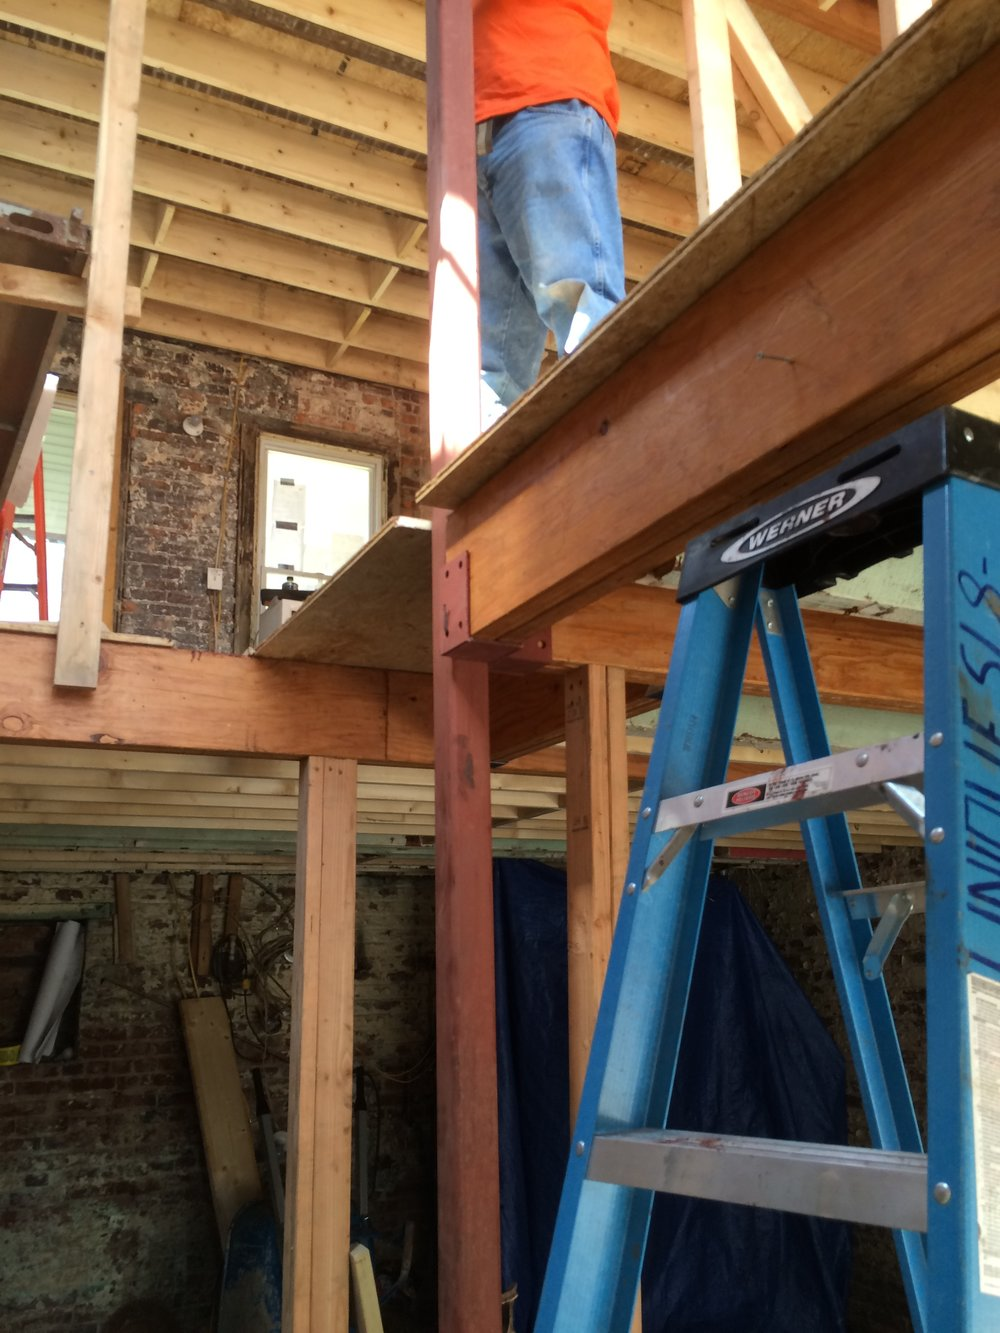 A view below the 1st floor showing the new LVL beams, Advantech sheathing, and the new steel posts place